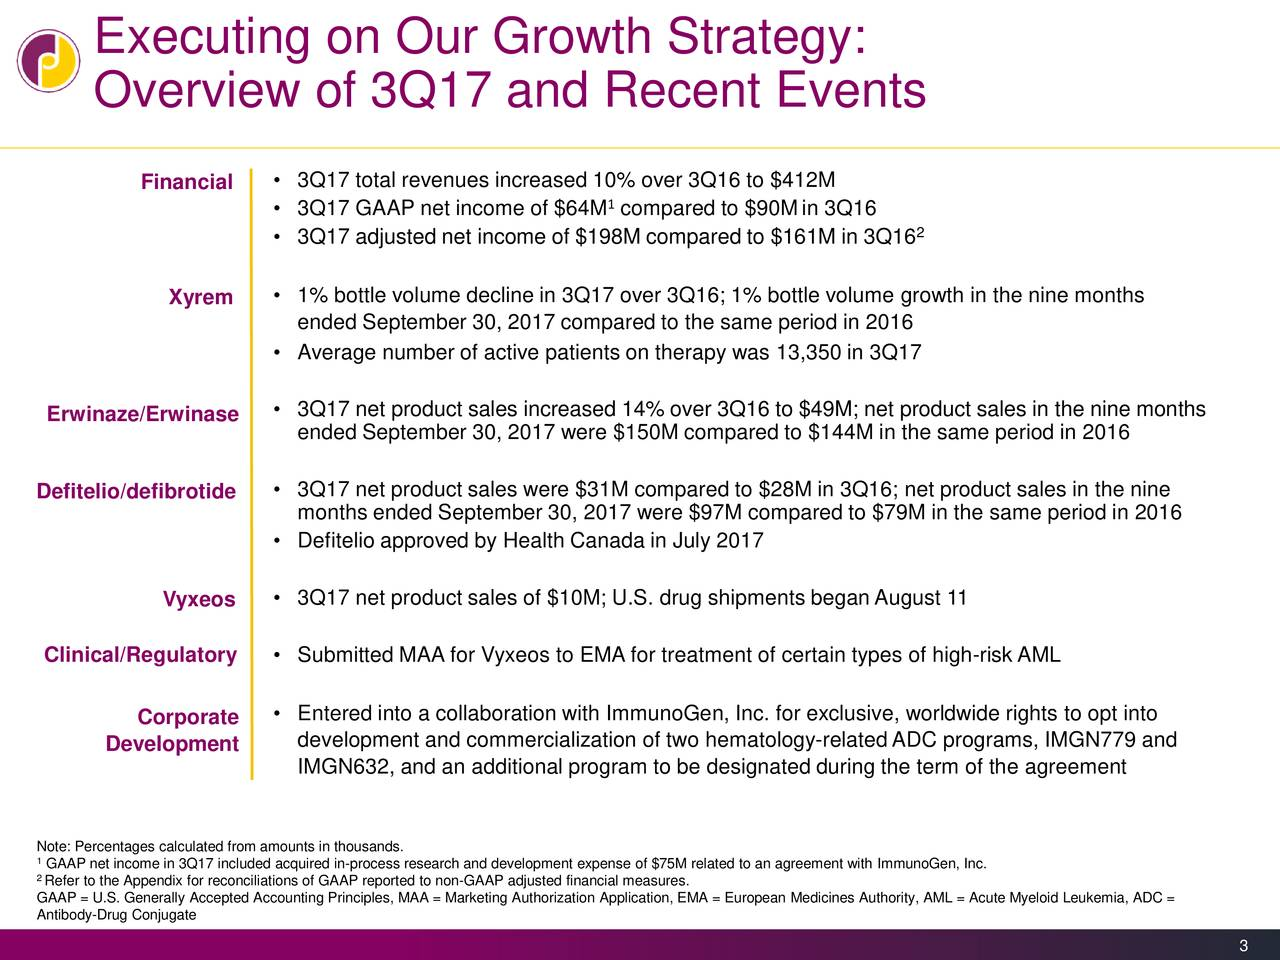 Overview of 3Q17 and Recent Events Financial • 3Q17 total revenues increased 10% over 3Q16 to $412M • 3Q17 GAAP net income of $64M compared to $90Min 3Q16 2 • 3Q17 adjusted net income of $198M compared to $161M in 3Q16 • 1% bottle volume decline in 3Q17 over 3Q16; 1% bottle volume growth in the nine months Xyrem ended September 30, 2017 compared to the same period in 2016 • Average number of active patients on therapy was 13,350 in 3Q17 Erwinaze/Erwinase • 3Q17 net product sales increased 14% over 3Q16 to $49M; net product sales in the nine months ended September 30, 2017 were $150M compared to $144M in the same period in 2016 Defitelio/defibrotide • 3Q17 net product sales were $31M compared to $28M in 3Q16; net product sales in the nine months ended September 30, 2017 were $97M compared to $79M in the same period in 2016 • Defitelio approved by Health Canada in July 2017 Vyxeos • 3Q17 net product sales of $10M; U.S. drug shipments began August 11 Clinical/Regulatory • Submitted MAA for Vyxeos to EMA for treatment of certain types of high-risk AML • Entered into a collaboration with ImmunoGen, Inc. for exclusive, worldwide rights to opt into Corporate Development development and commercialization of two hematology-relatedADC programs, IMGN779 and IMGN632, and an additional program to be designated during the term of the agreement 1ote: Percentages calculated from amounts in thousands. 2Refer to the Appendix for reconciliations of GAAP reported to non-GAAP adjusted financial measures.ed to an agreement with ImmunoGen, Inc. GAAP = U.S. Generally Accepted Accounting Principles, MAA = Marketing Authorization Application, EMA = European Medicines Authority, AML = Acute Myeloid Leukemia, ADC = Antibody-Drug Conjugate